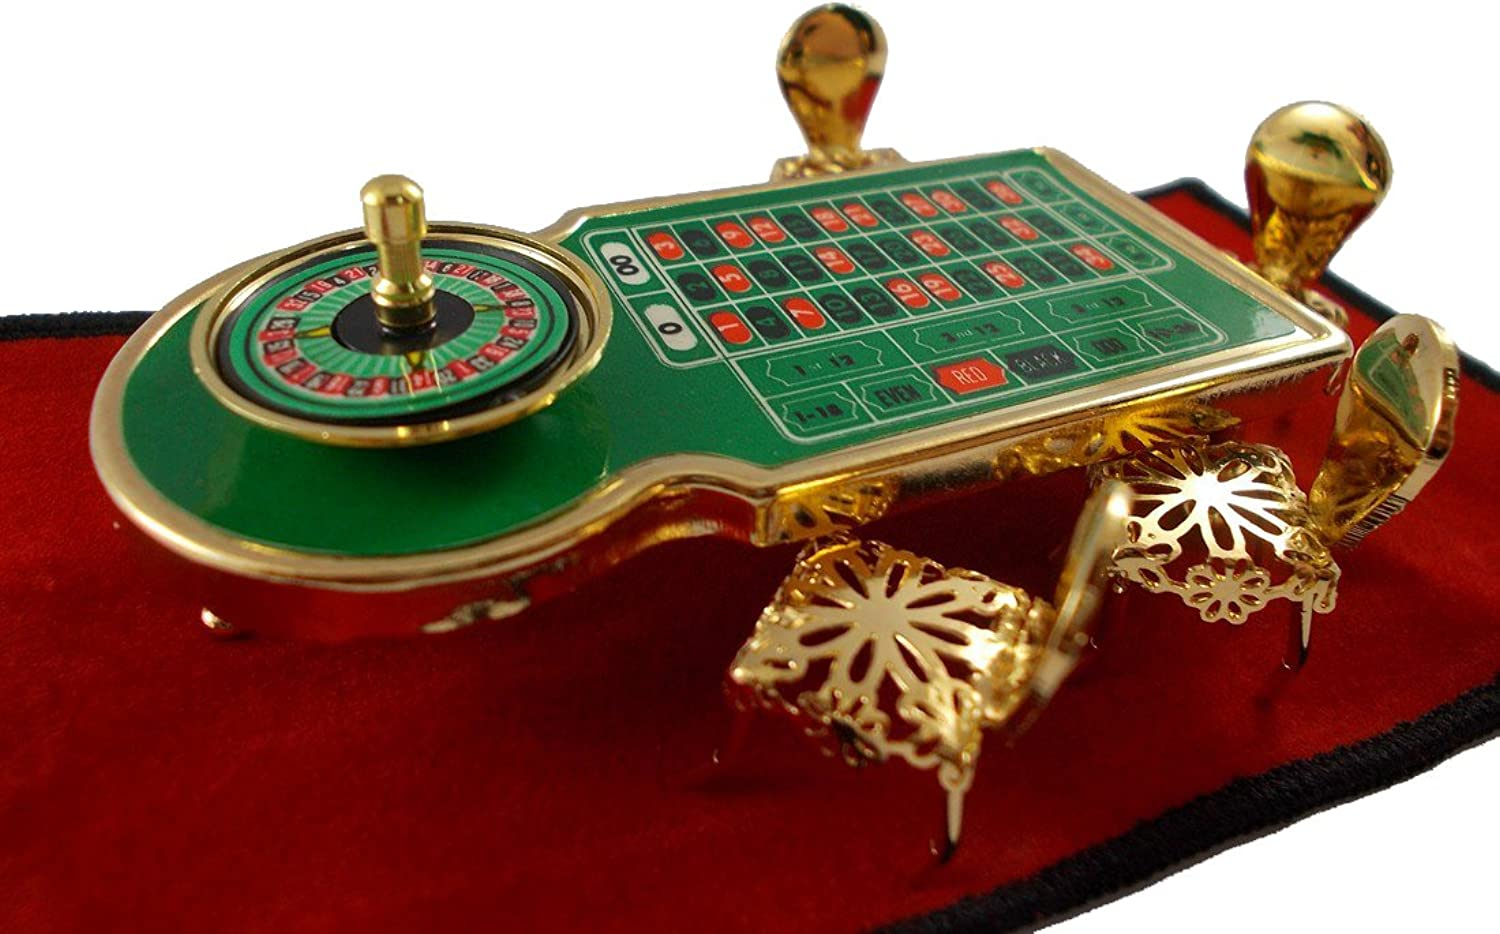 Roulette Table and Chairs Miniature Table Casino Brass Decor Figurines Chairs Dollhouse Brass collectibles Furniture